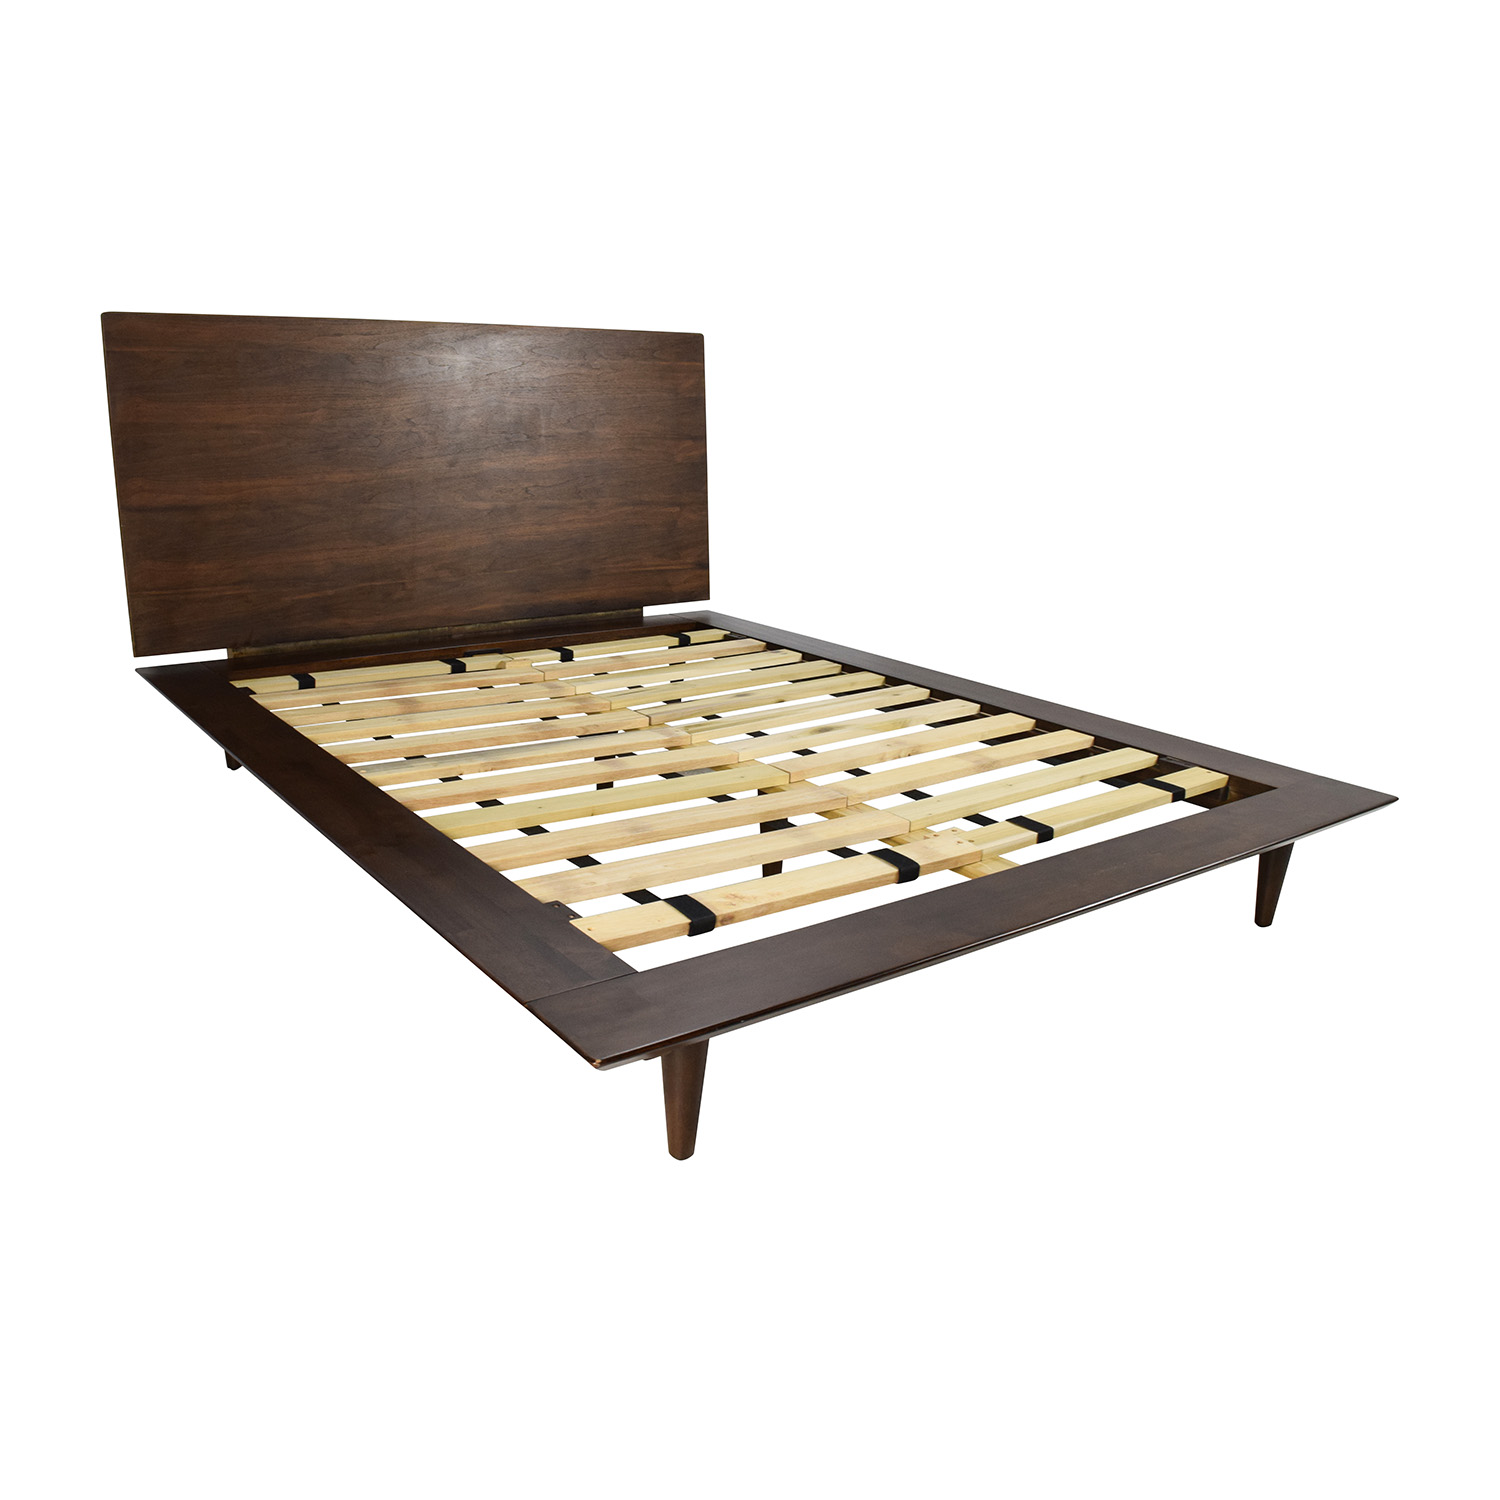 86 off full size brown wood bed frame beds. Black Bedroom Furniture Sets. Home Design Ideas